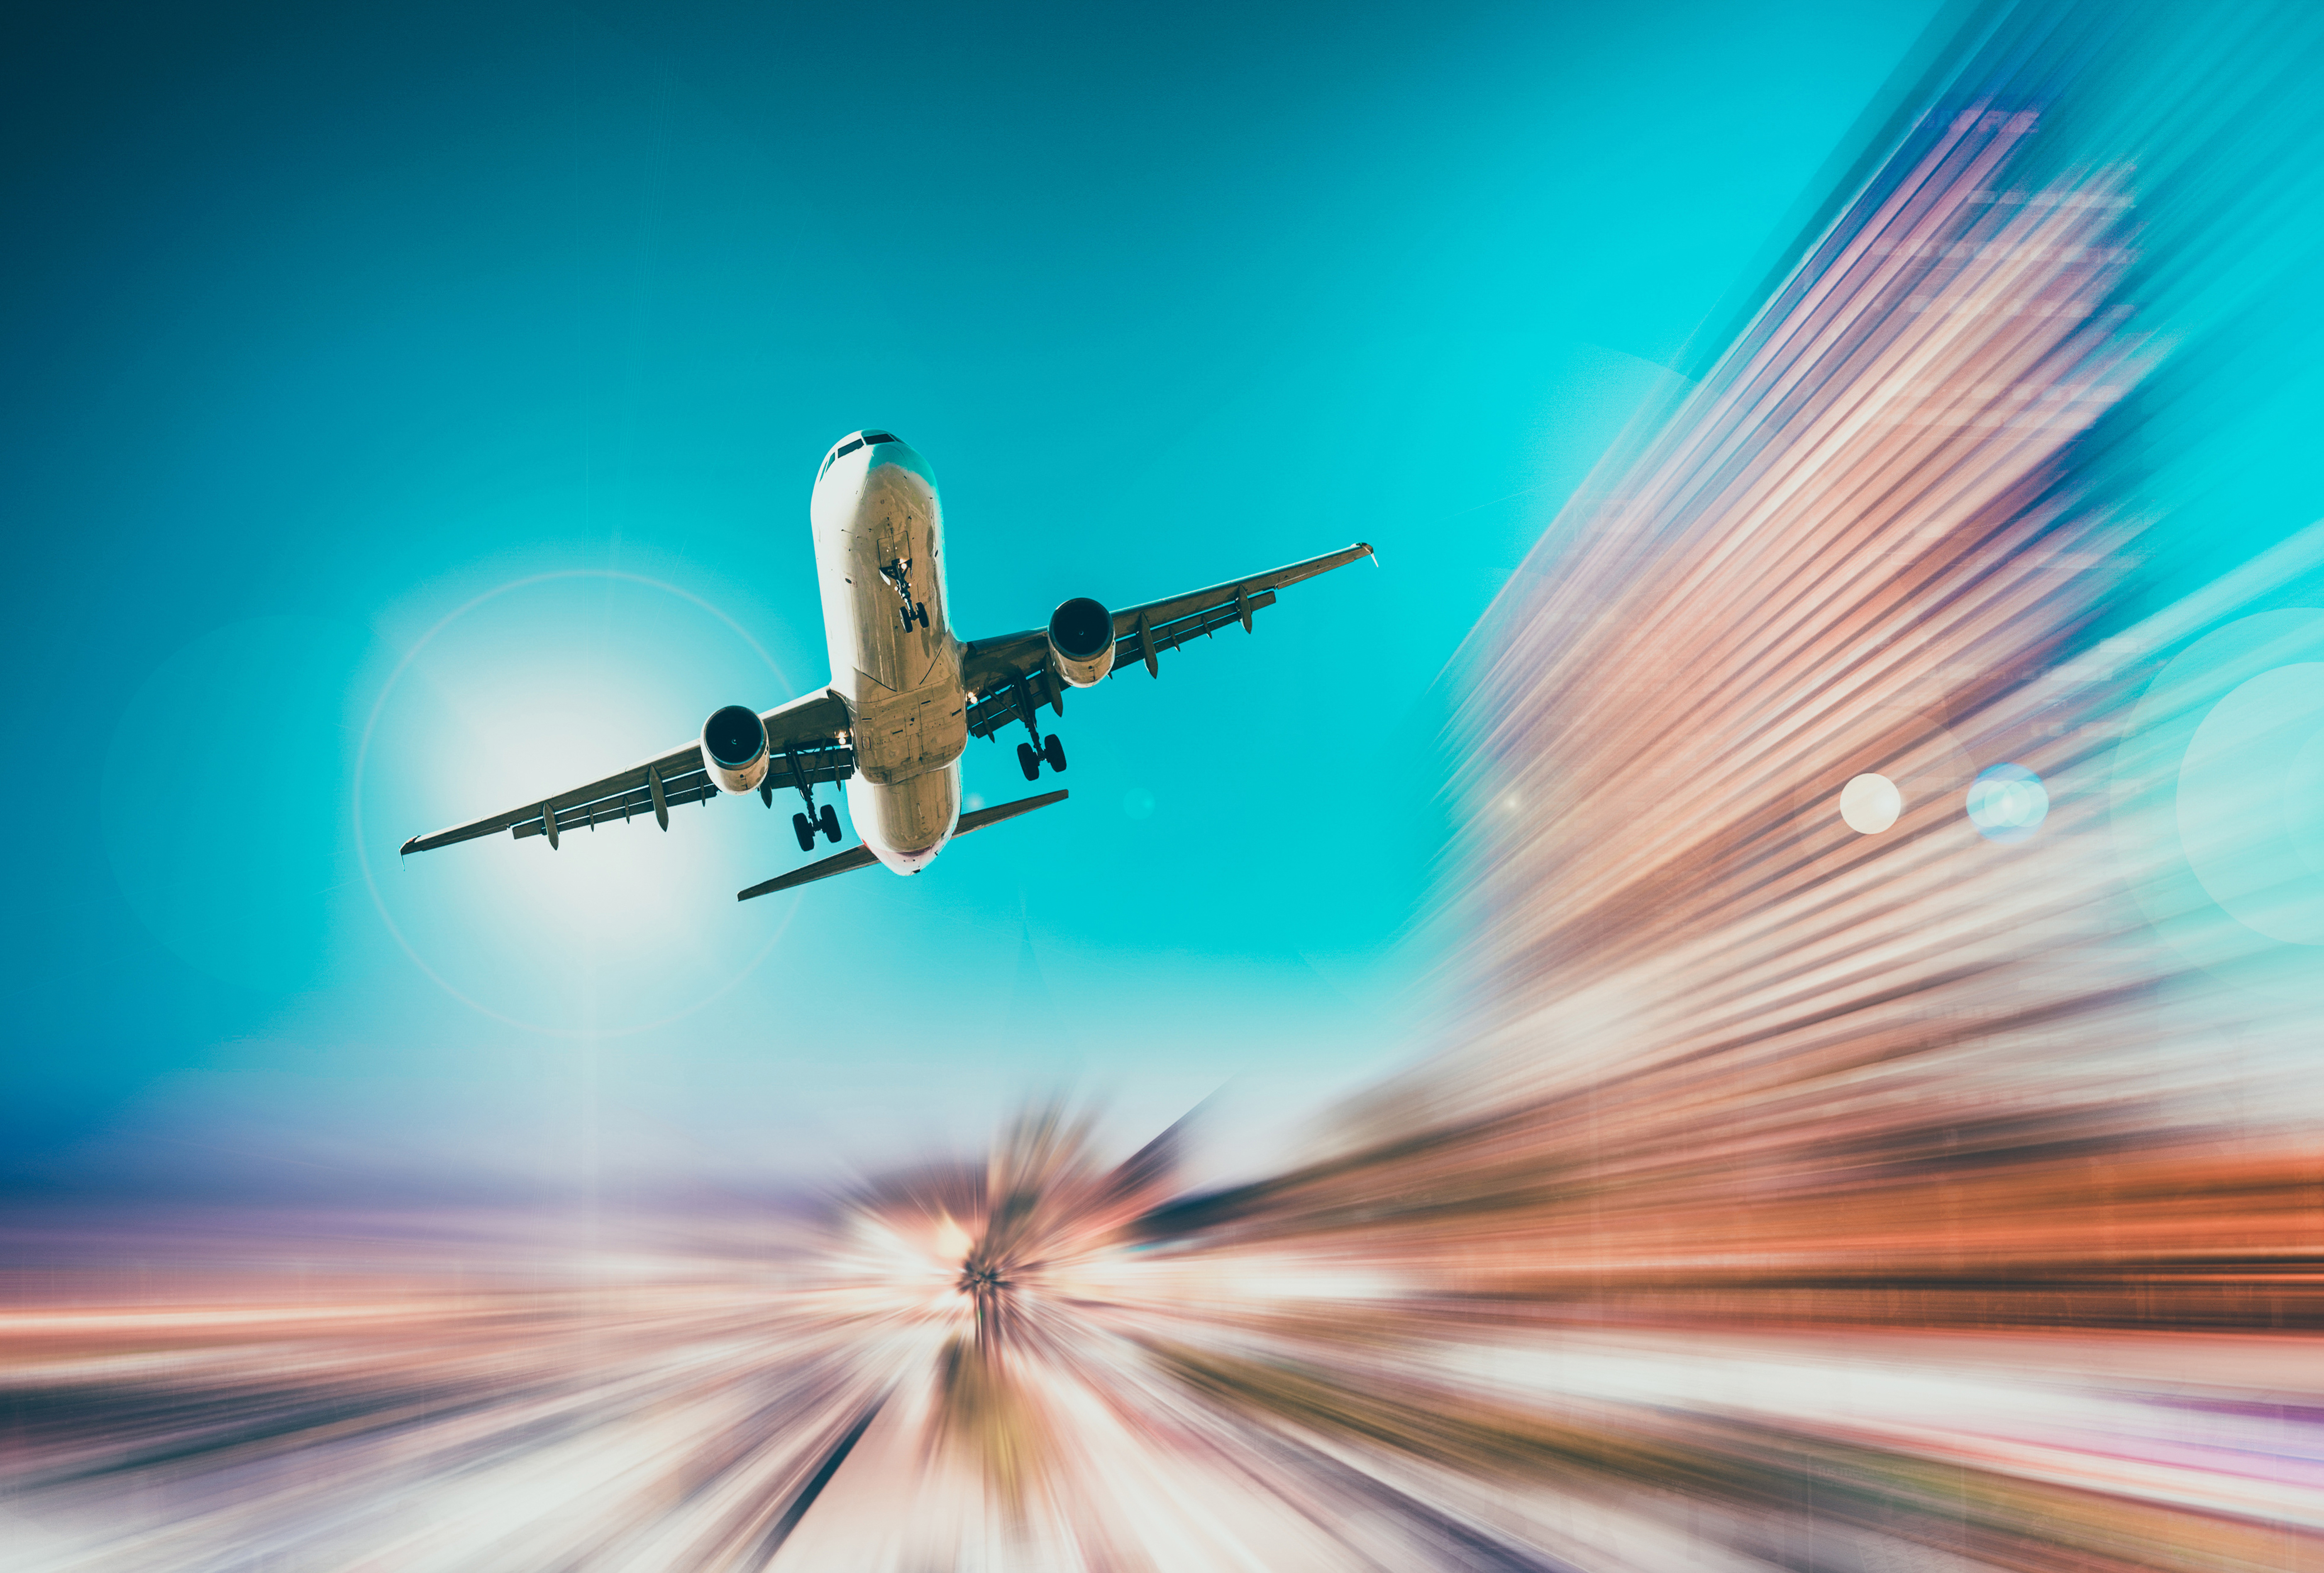 Airplane 5k Hd Planes 4k Wallpapers Images Backgrounds